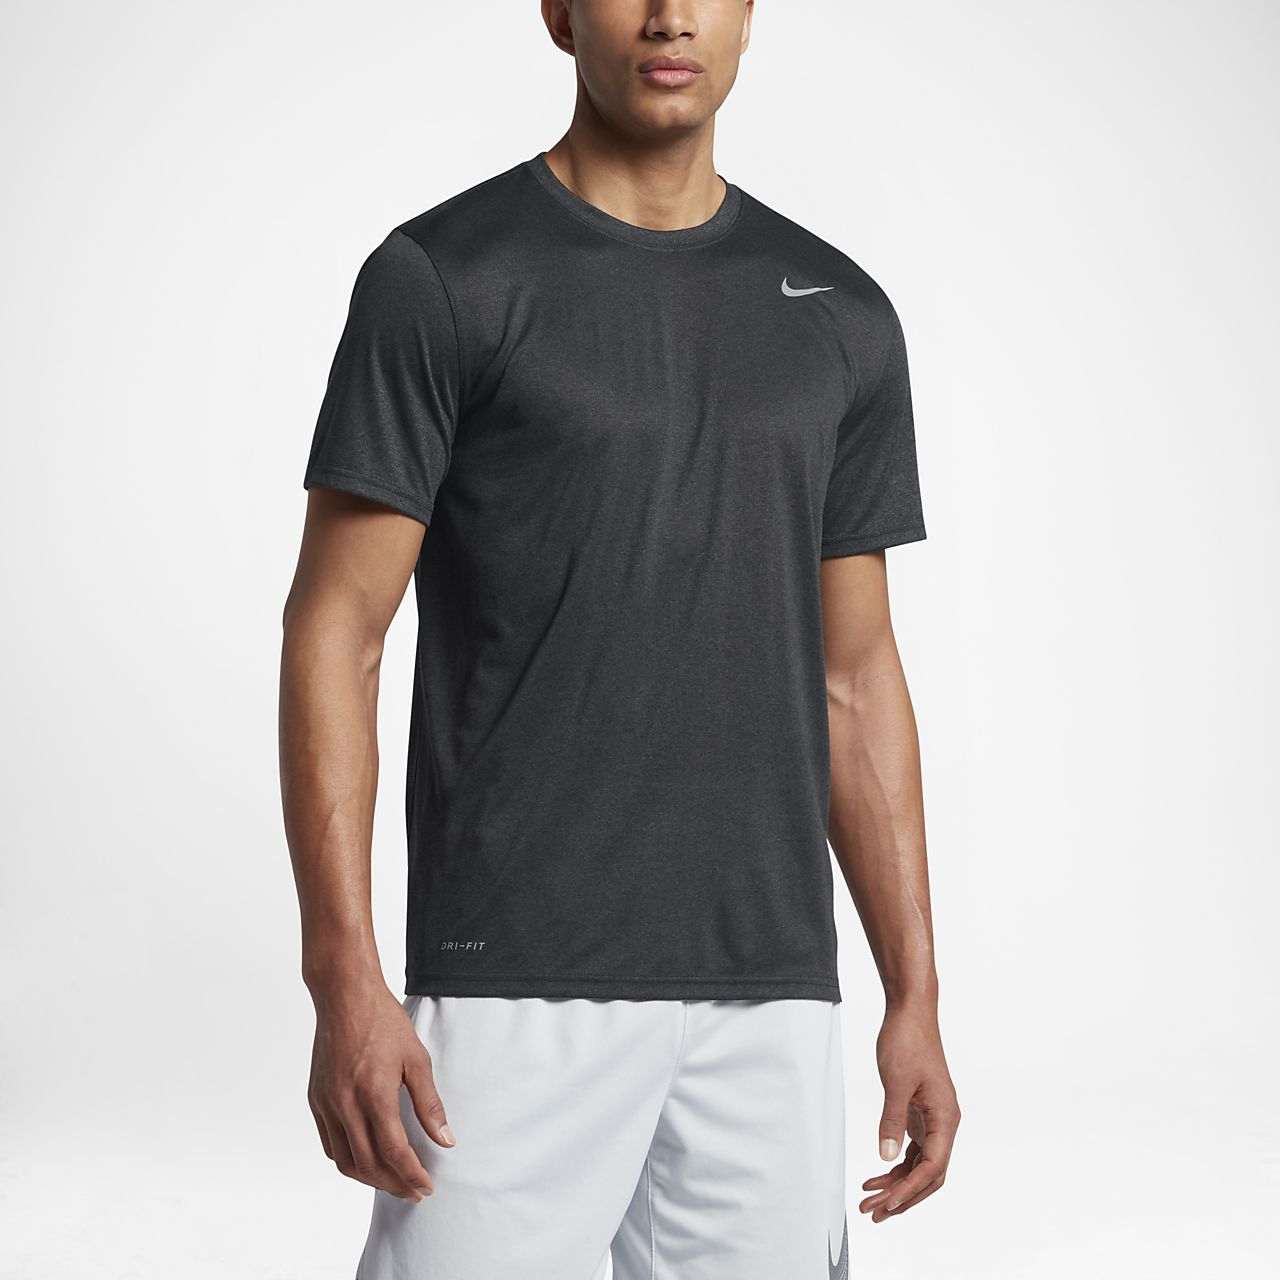 Nike Legend 2.0 Men's Training Shirts White/Black